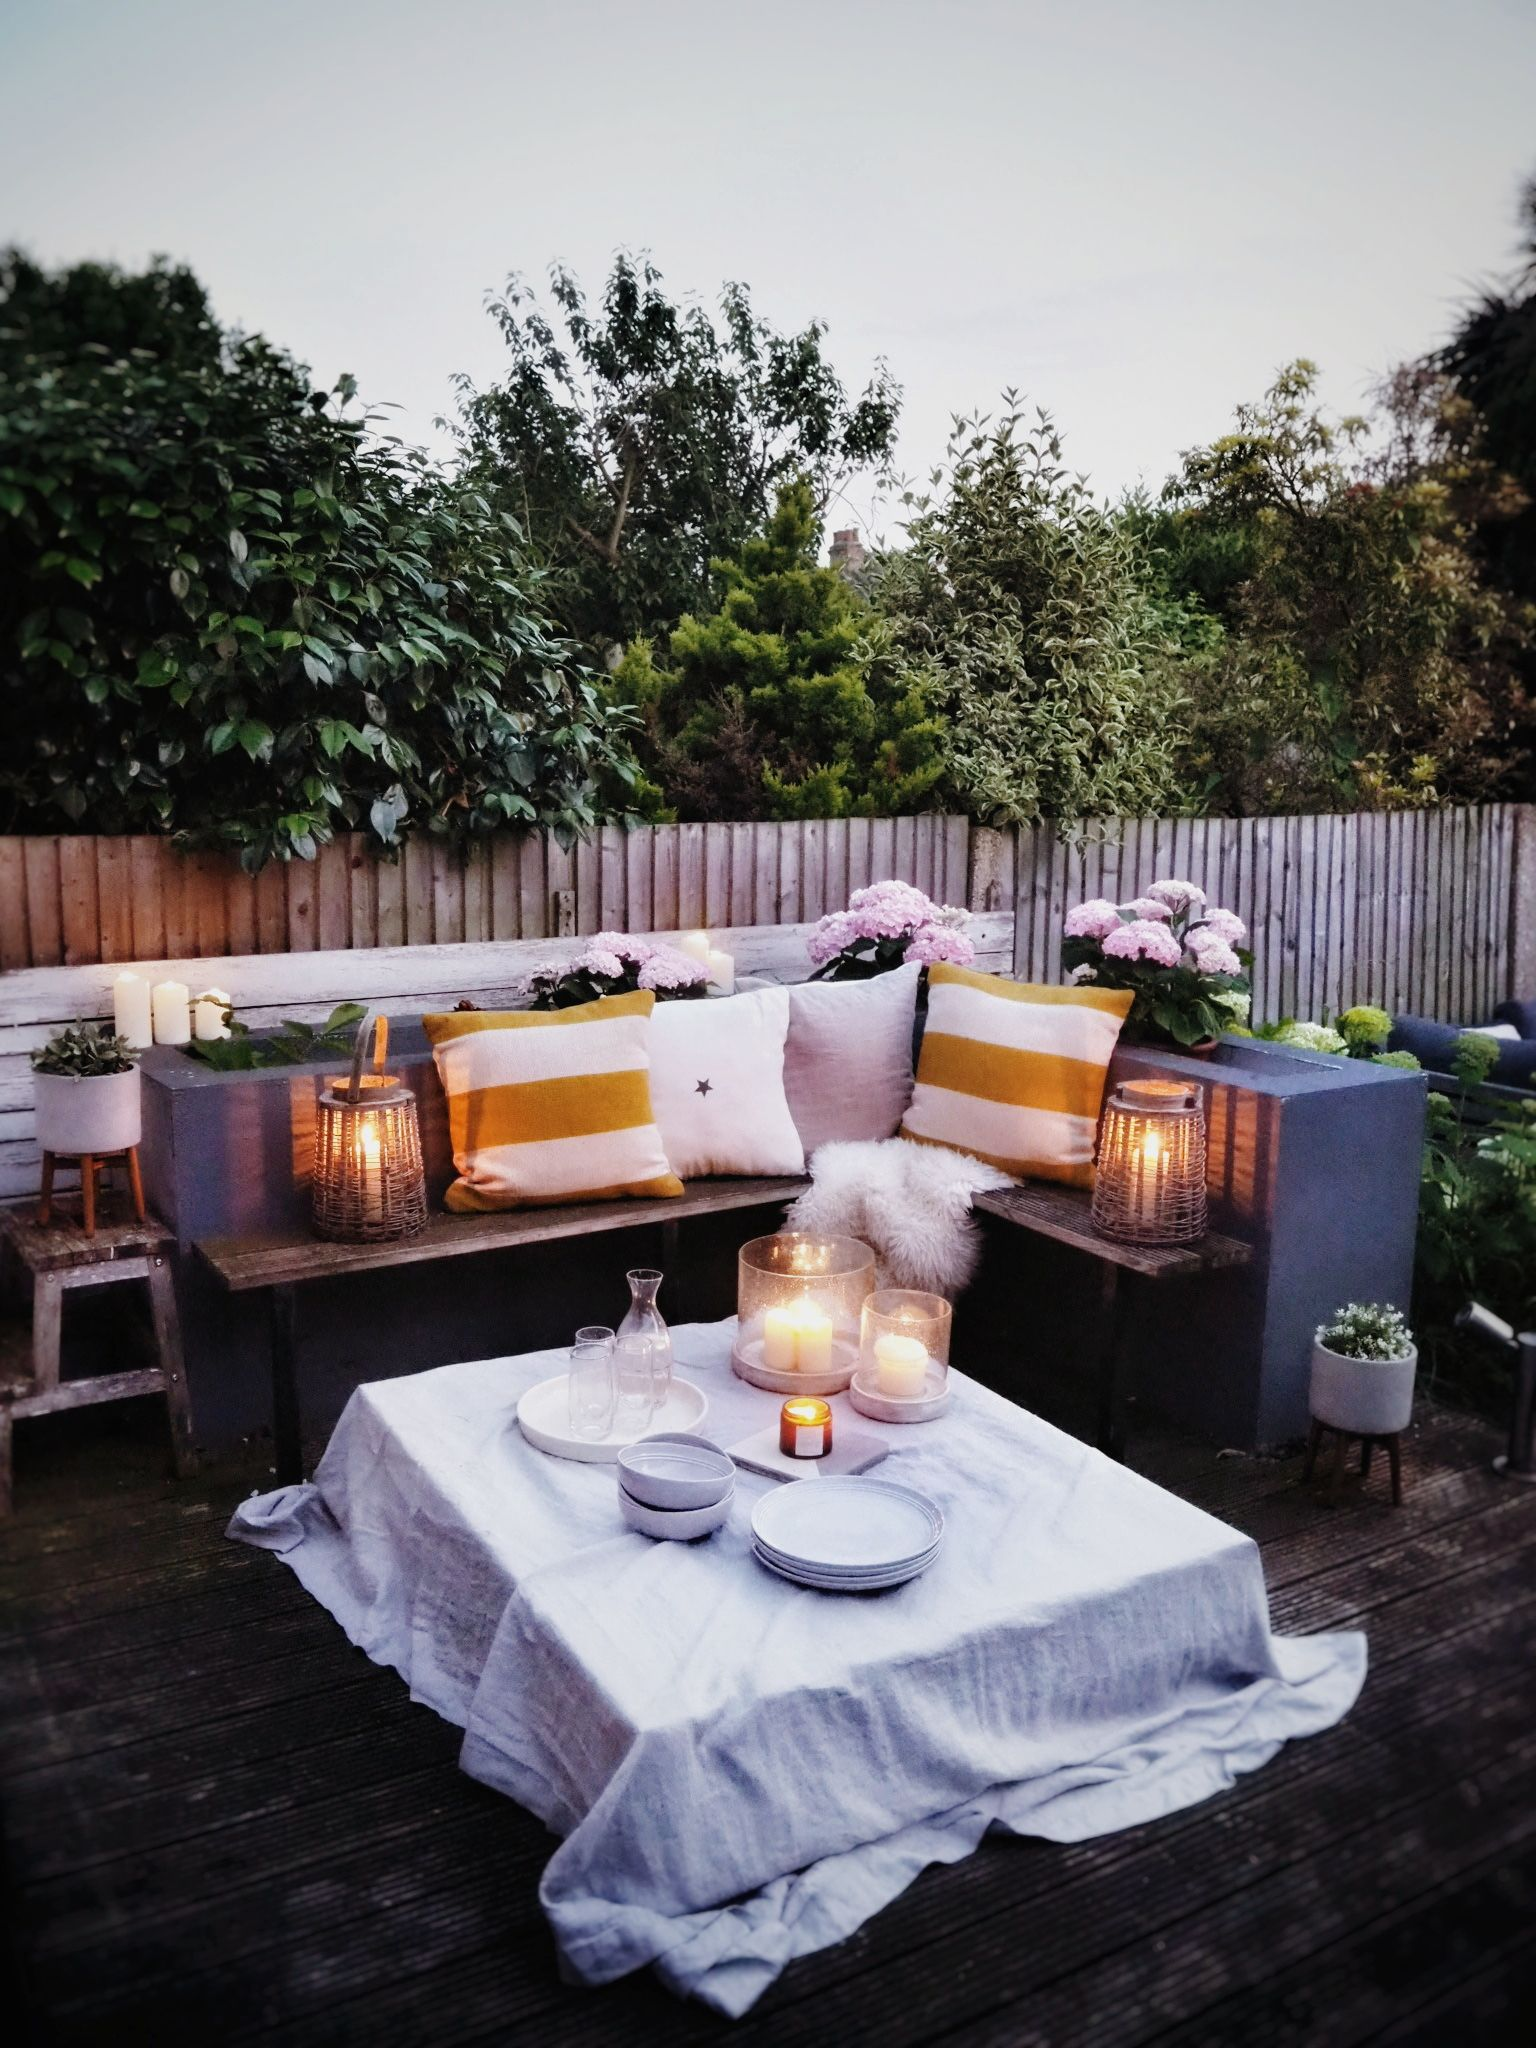 Marks & Spencer Garden Styling 6.jpg